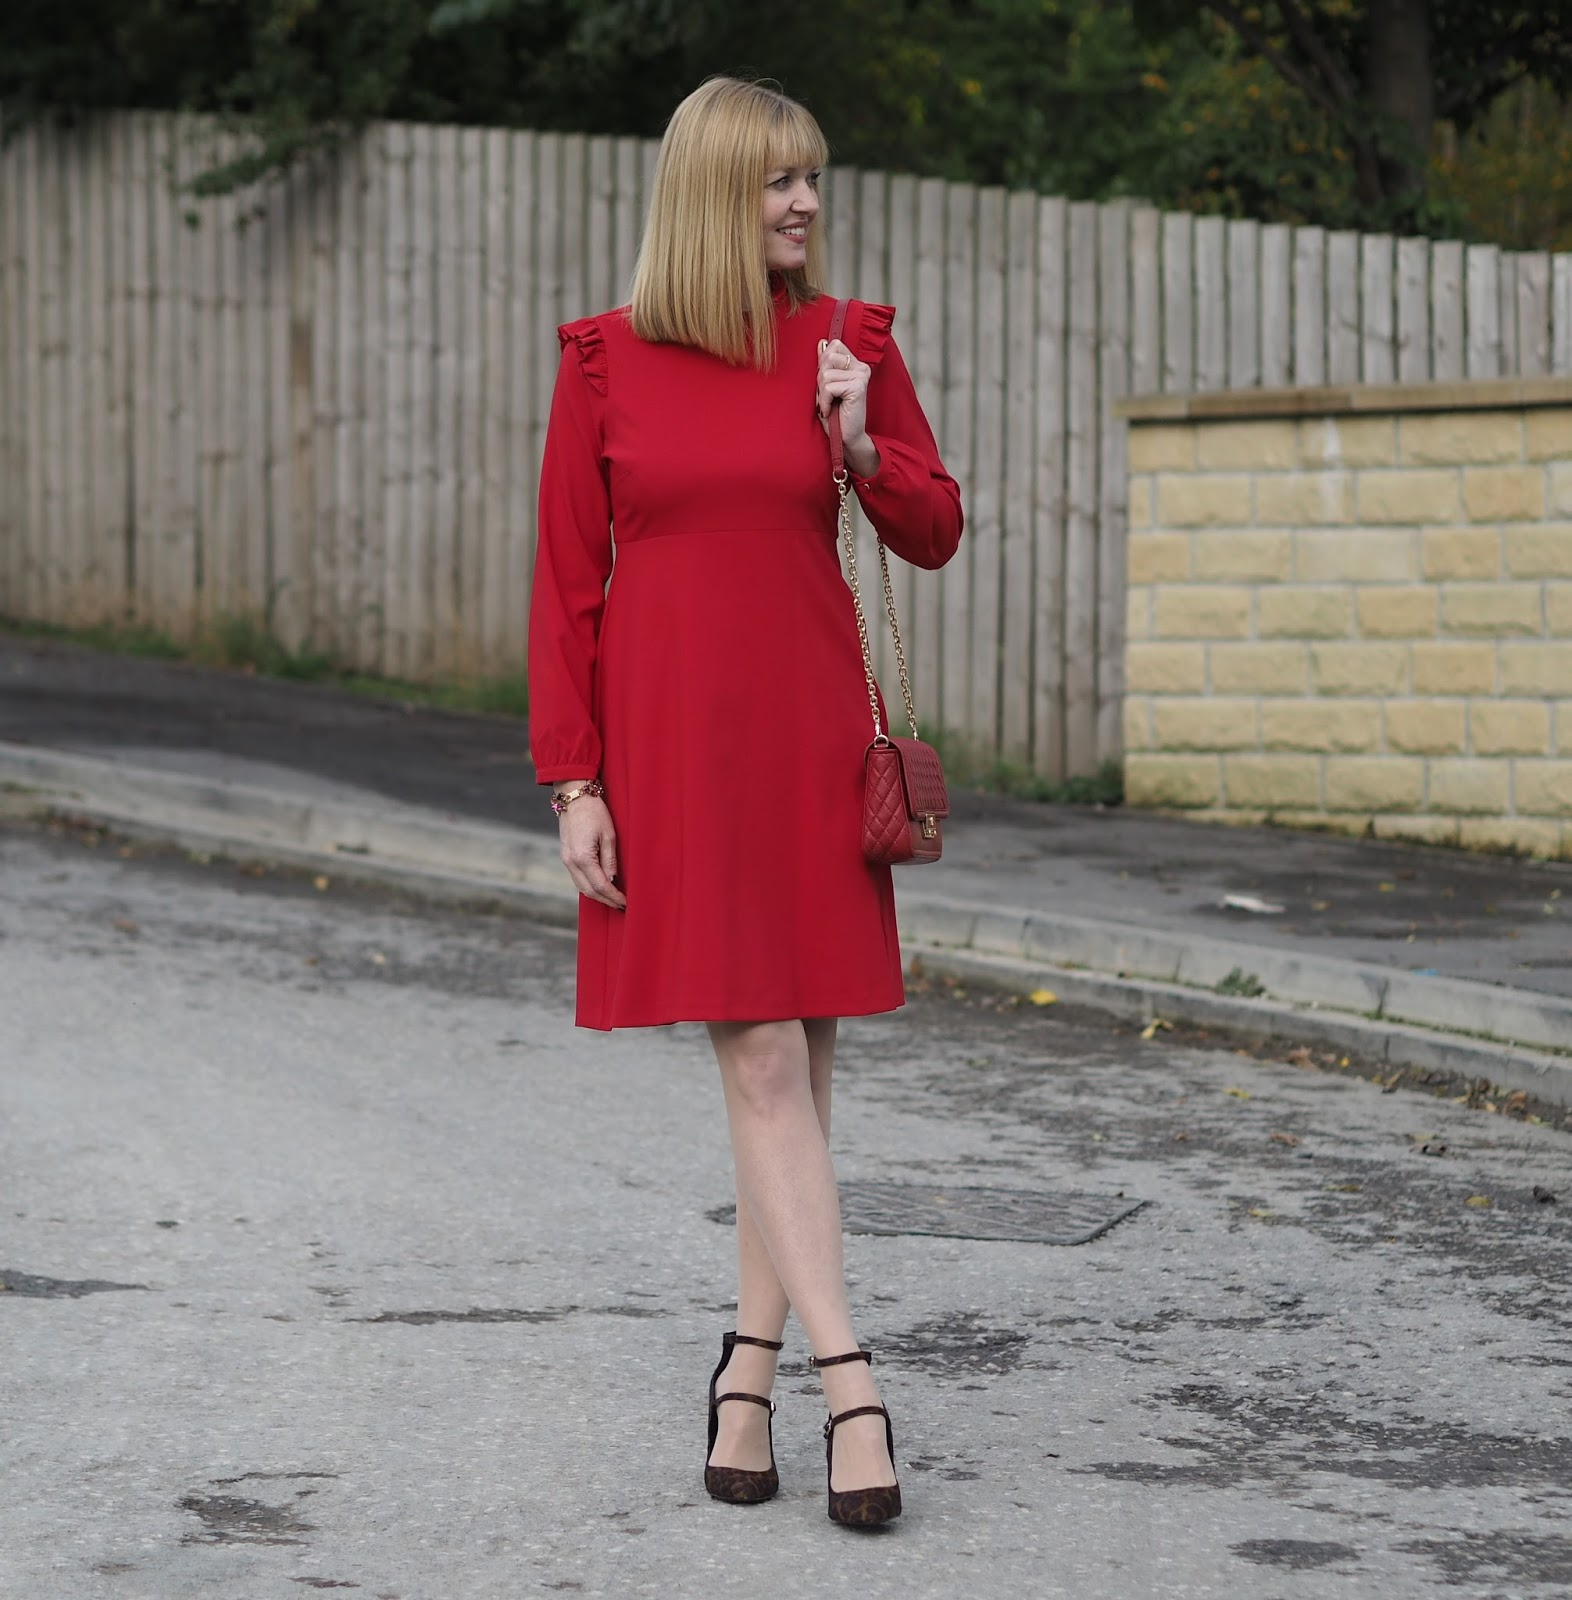 A Little Red Dress and A Statement Bracelet, over 40